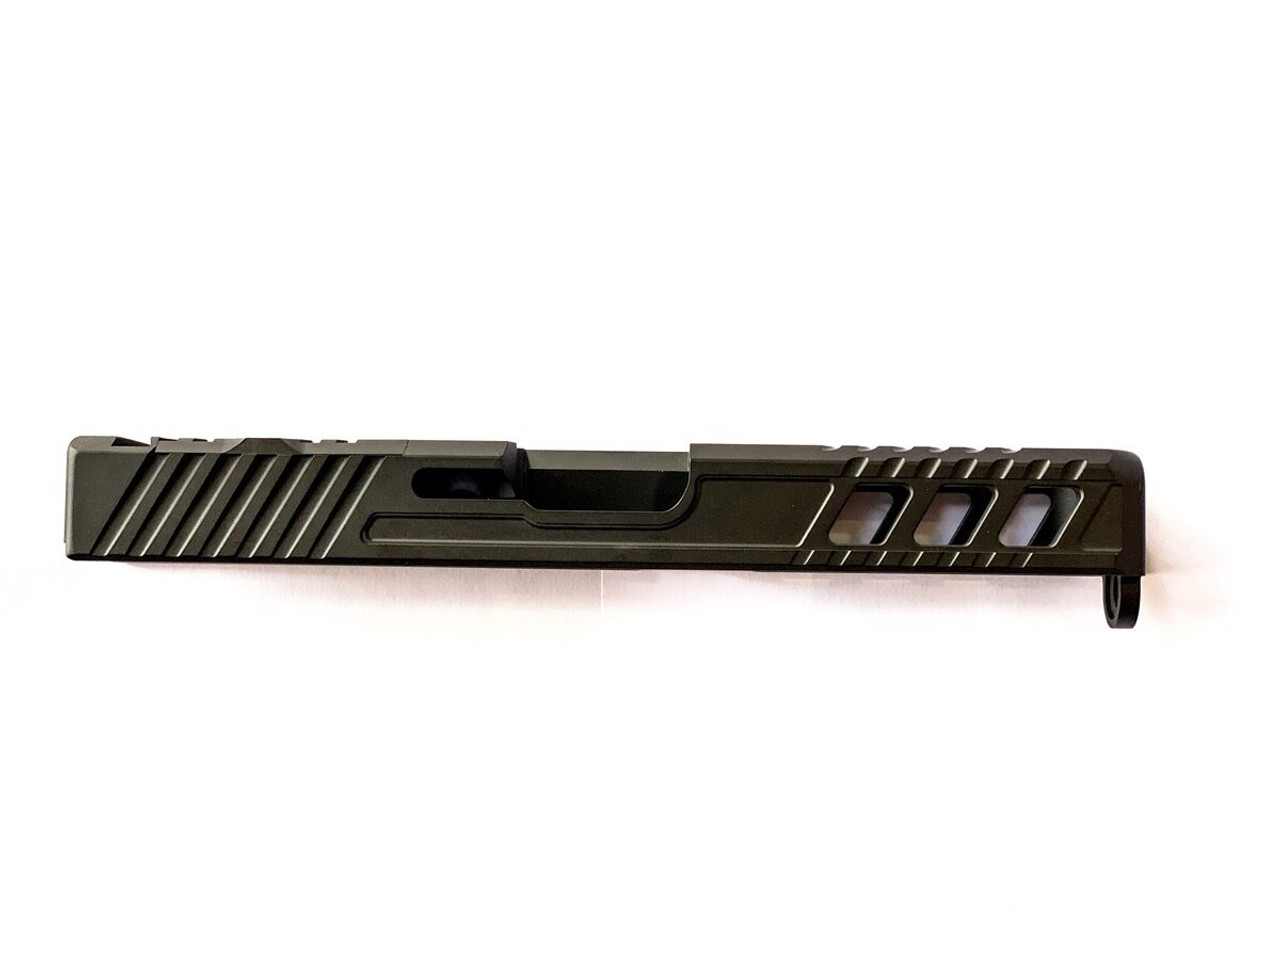 MDX Arms Alpha G21 .45ACP V4 Marksman Stripped Slide with RMR Cut/Plate